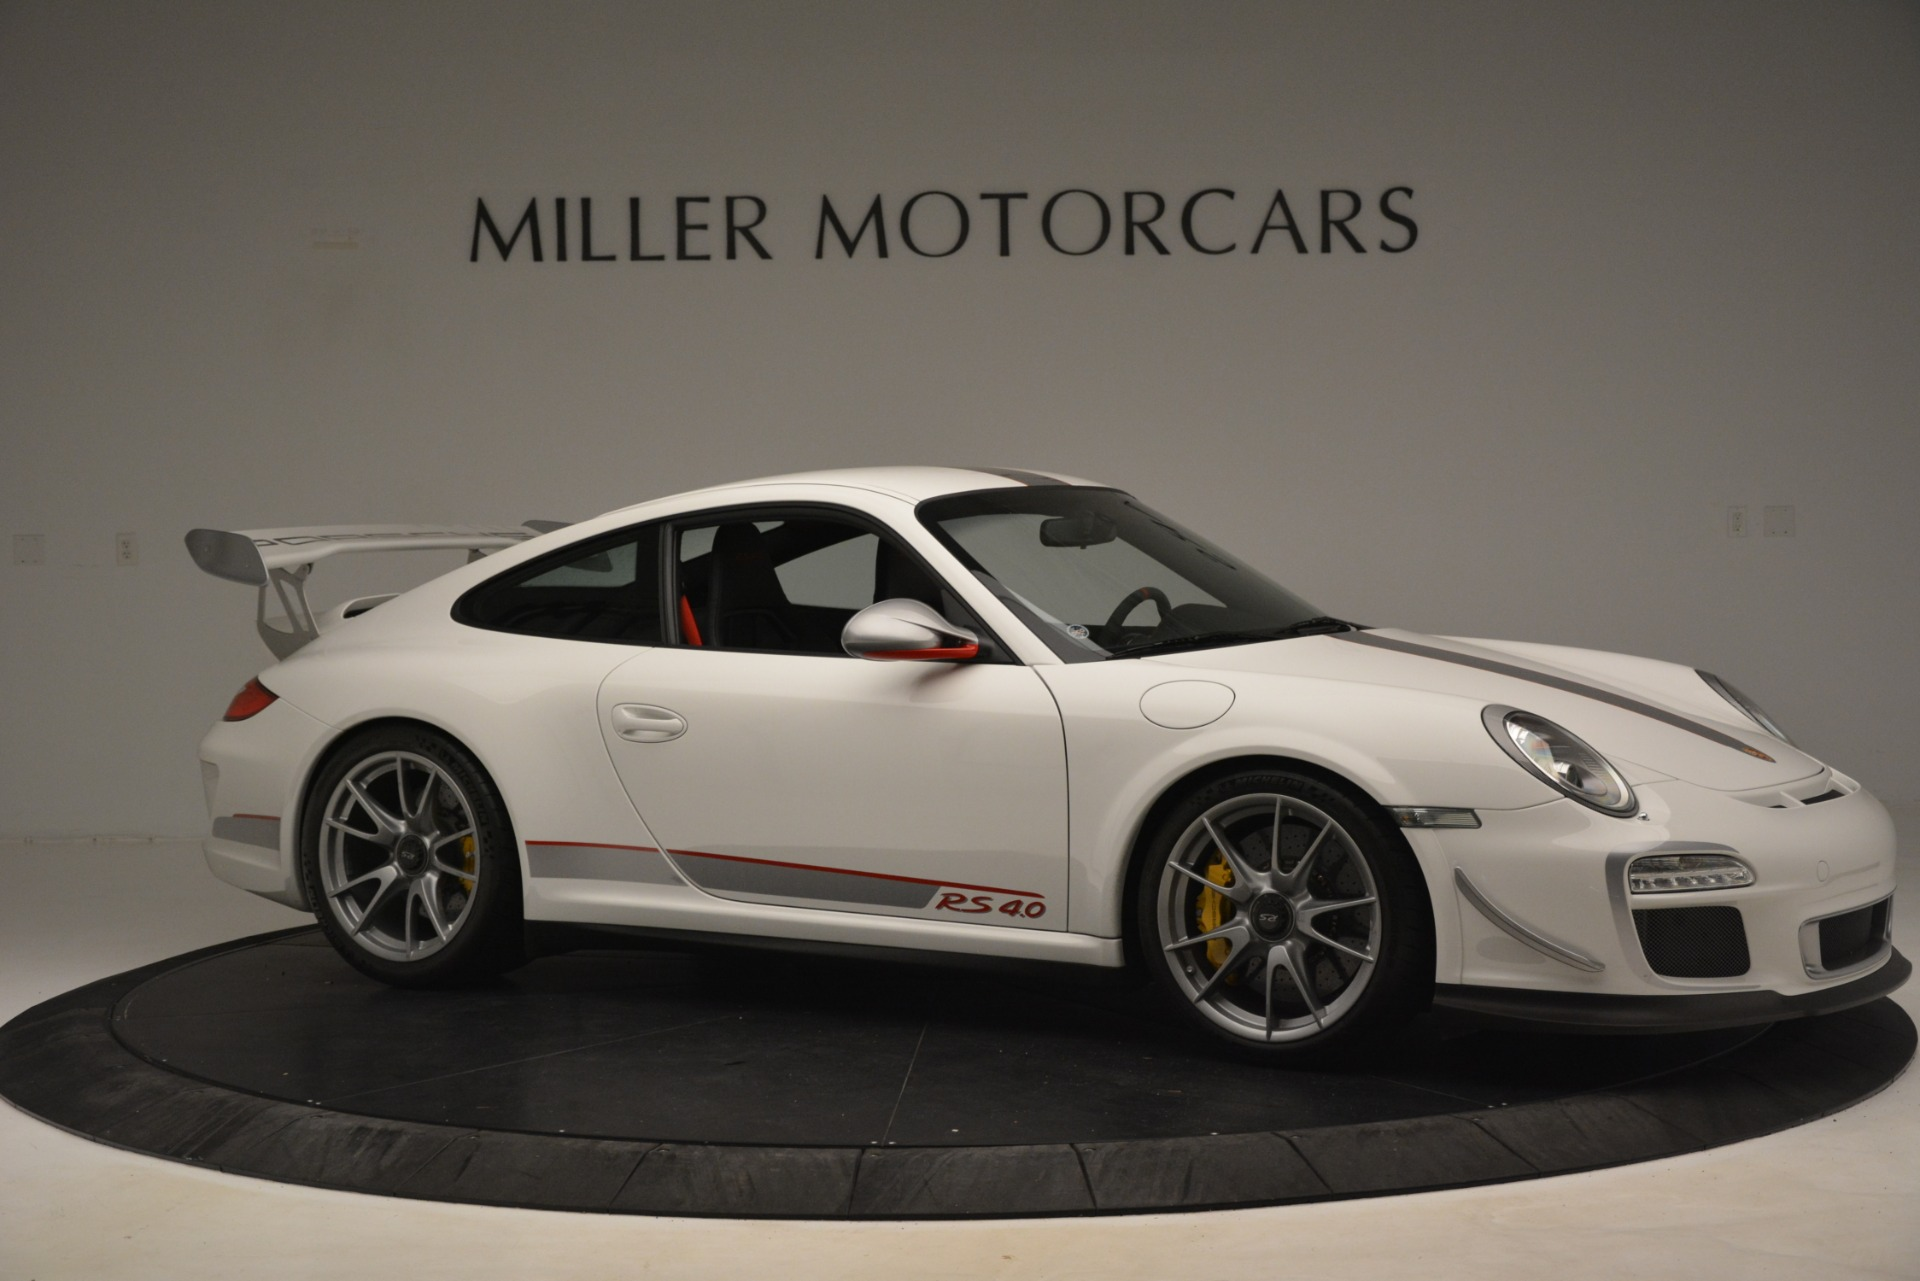 Used 2011 Porsche 911 GT3 RS 4.0 For Sale In Westport, CT 3188_p11